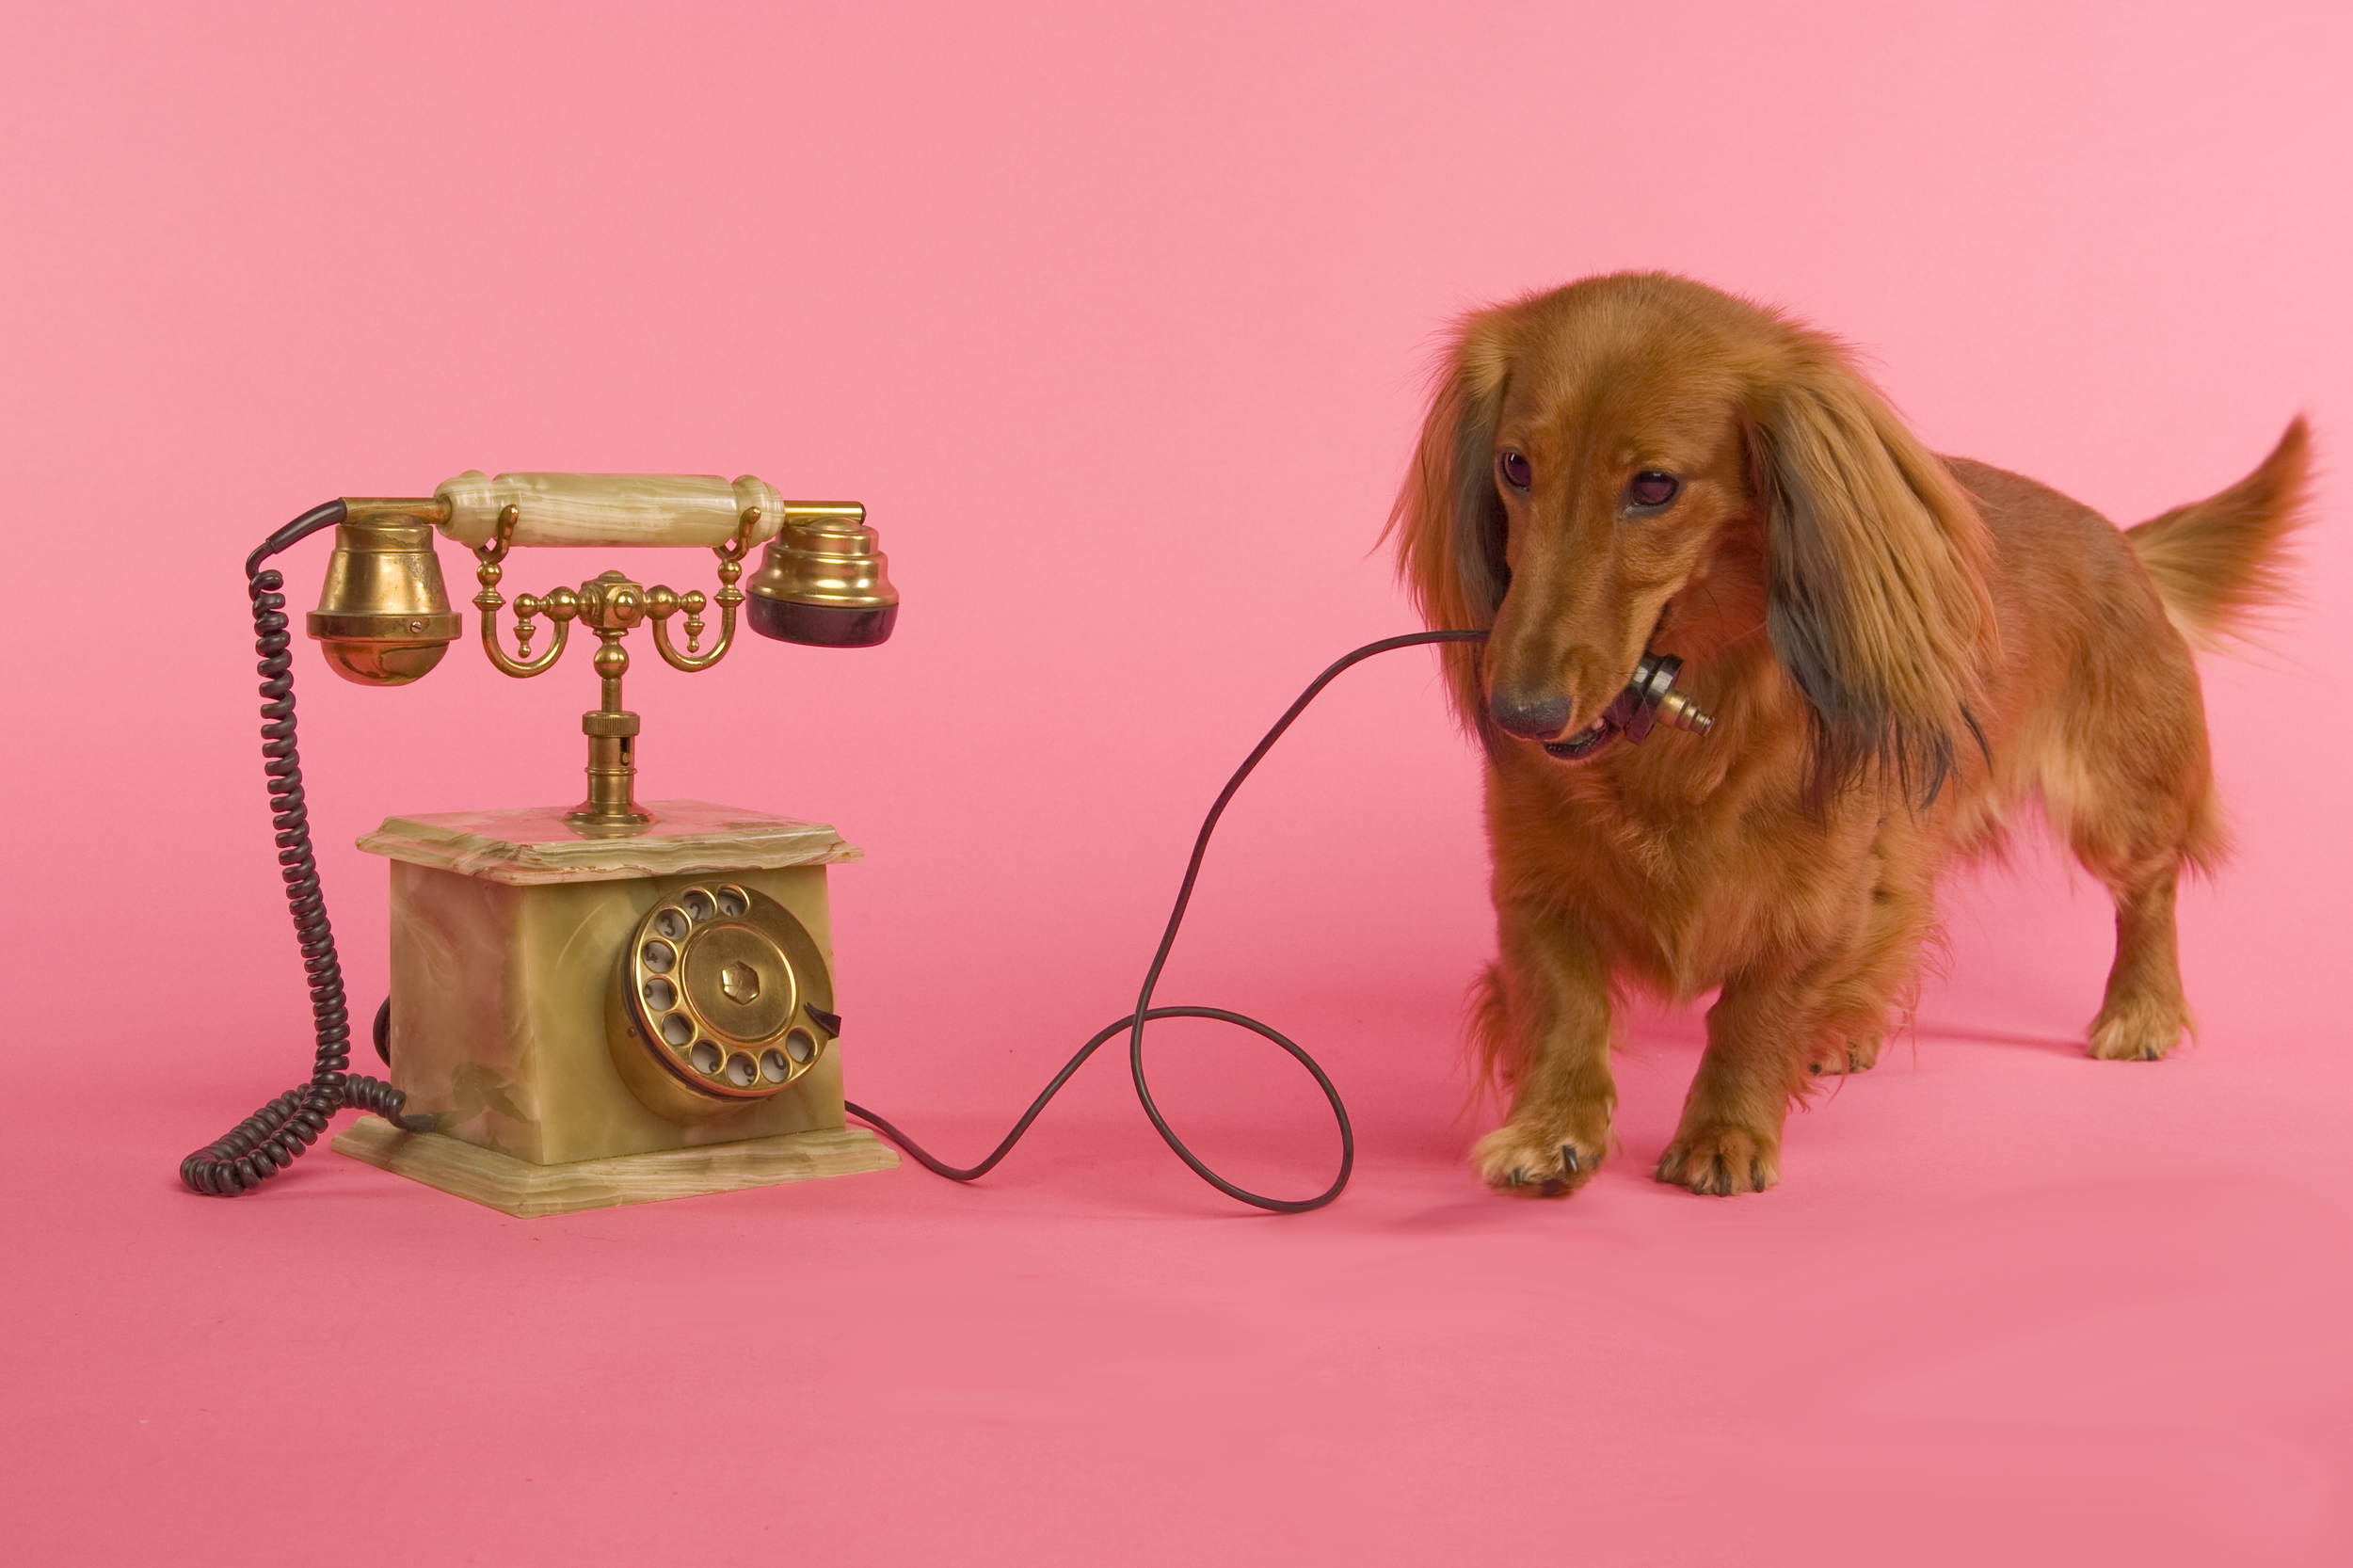 doxie with phone.jpg